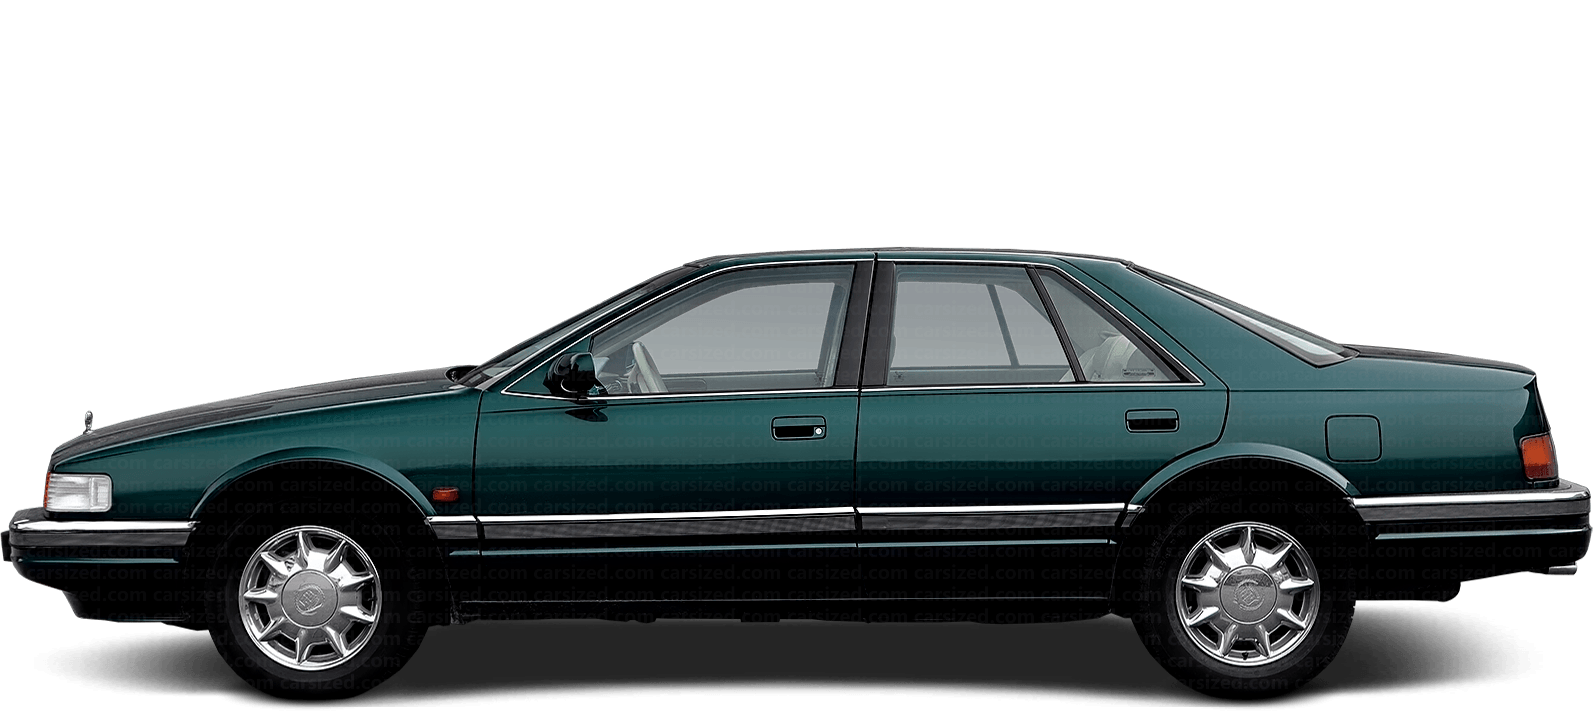 Cadillac Seville Sedan 1991-1997 Side View